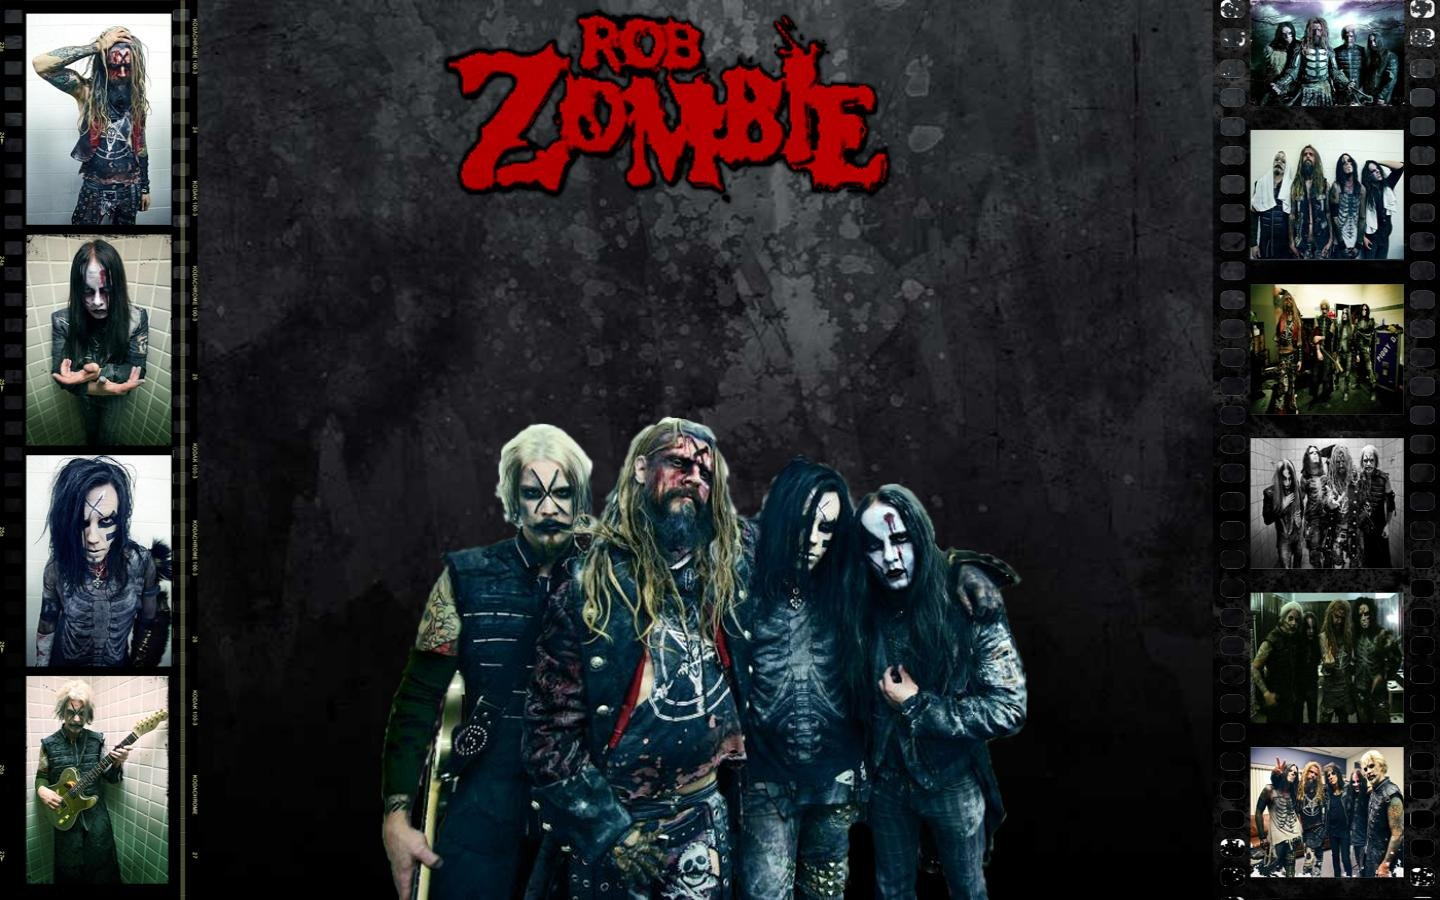 Download hd 1440x900 rob zombie desktop wallpaper id456962 for free voltagebd Images